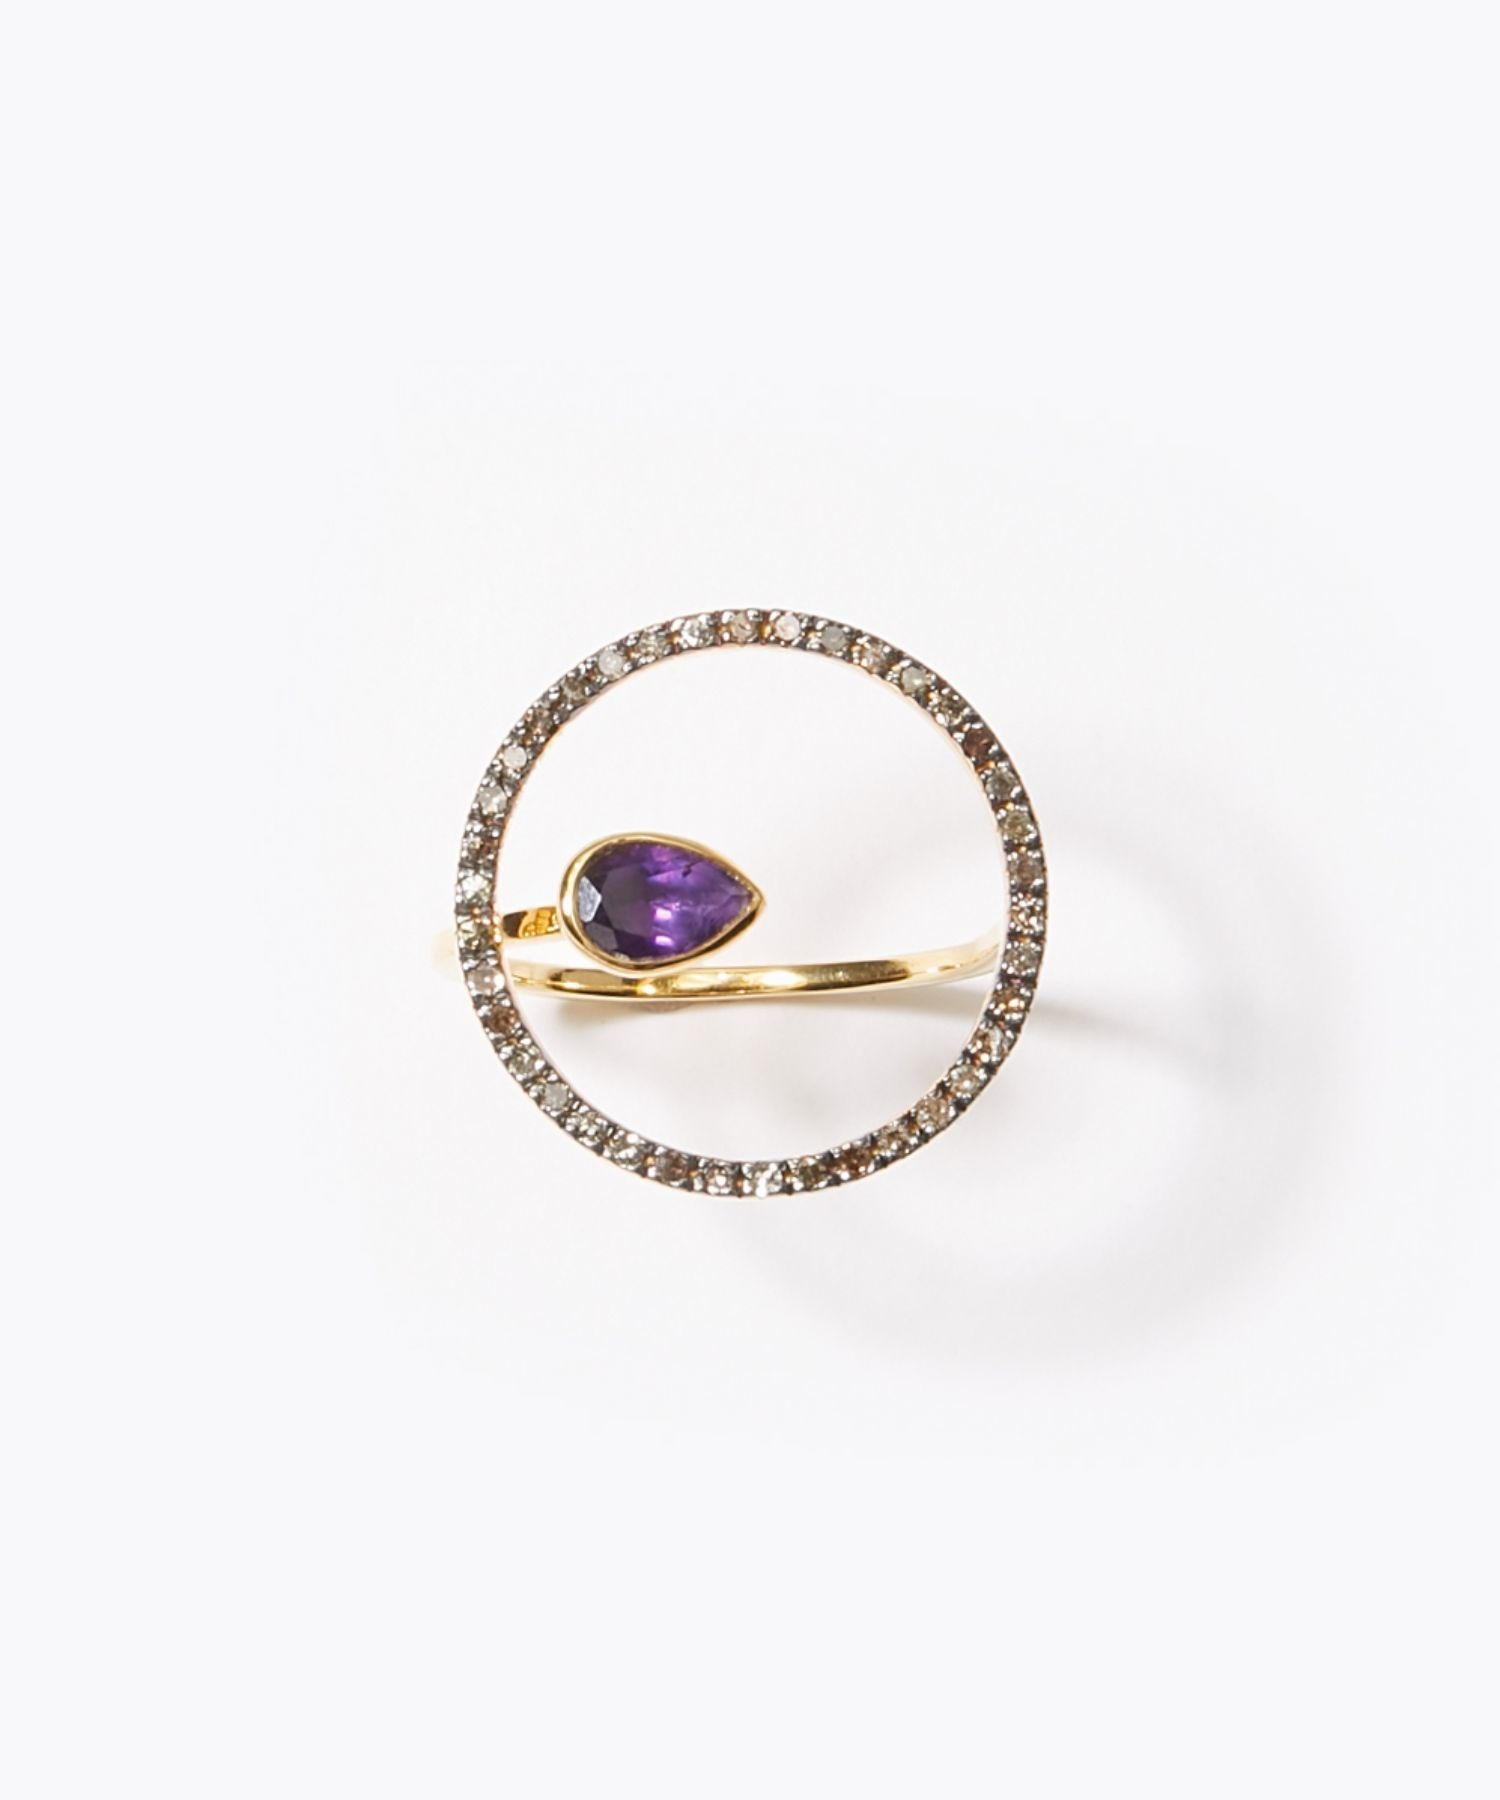 [elafonisi] dark amethyst and pave circle ring